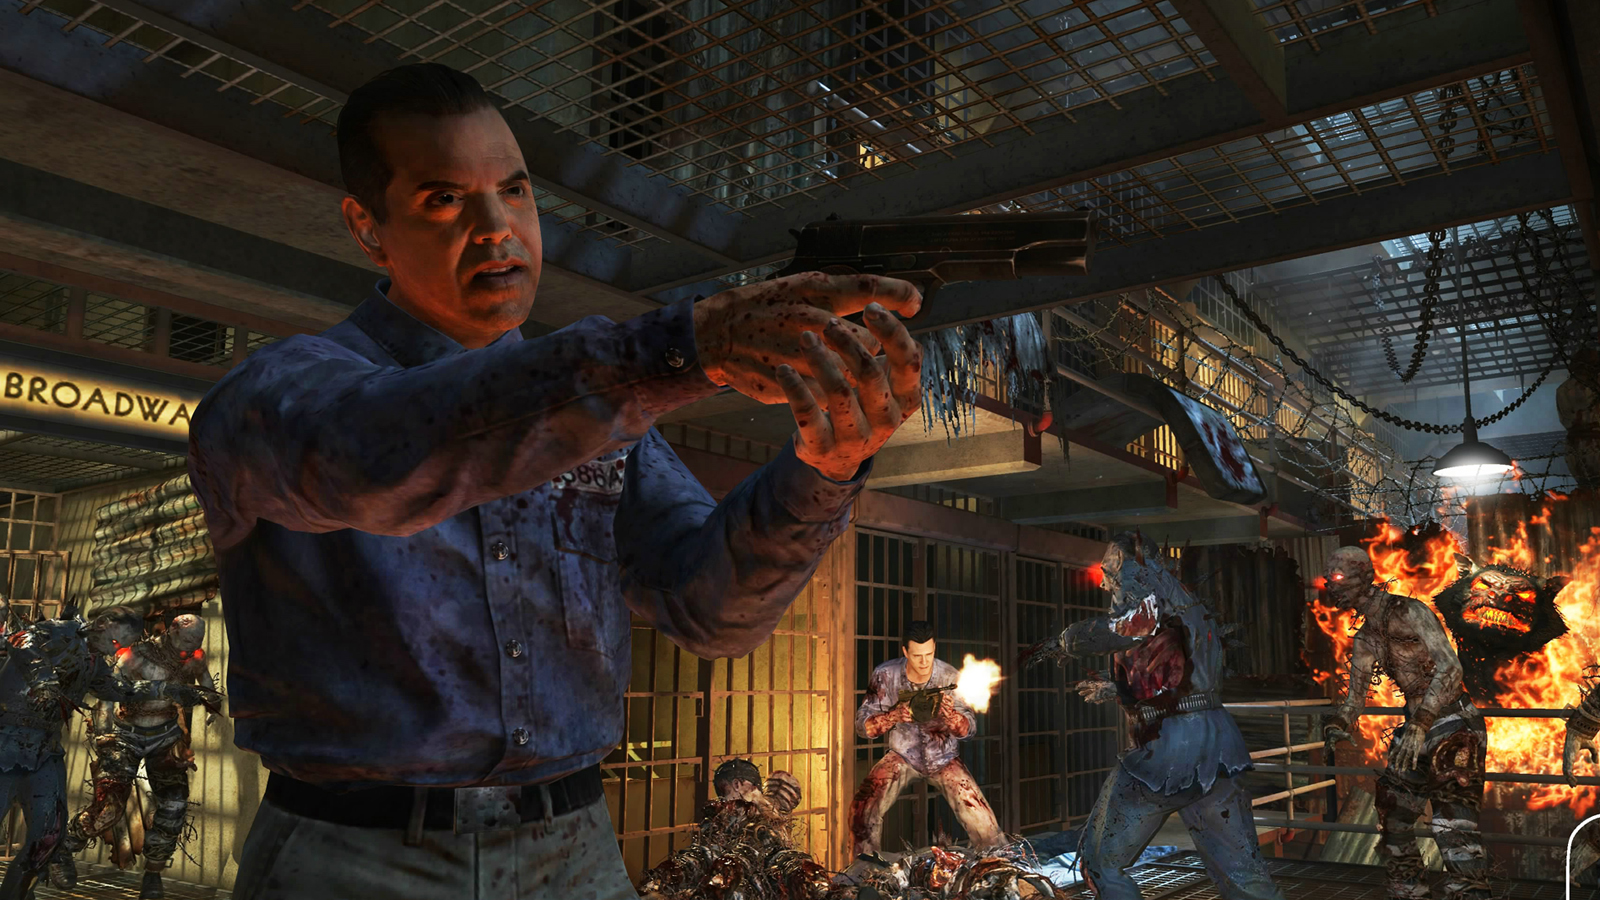 Alcatraz Guards 1930 http://www.theaveragegamer.com/2013/05/04/call-of-duty-black-ops-ii-uprising-dlc-review/